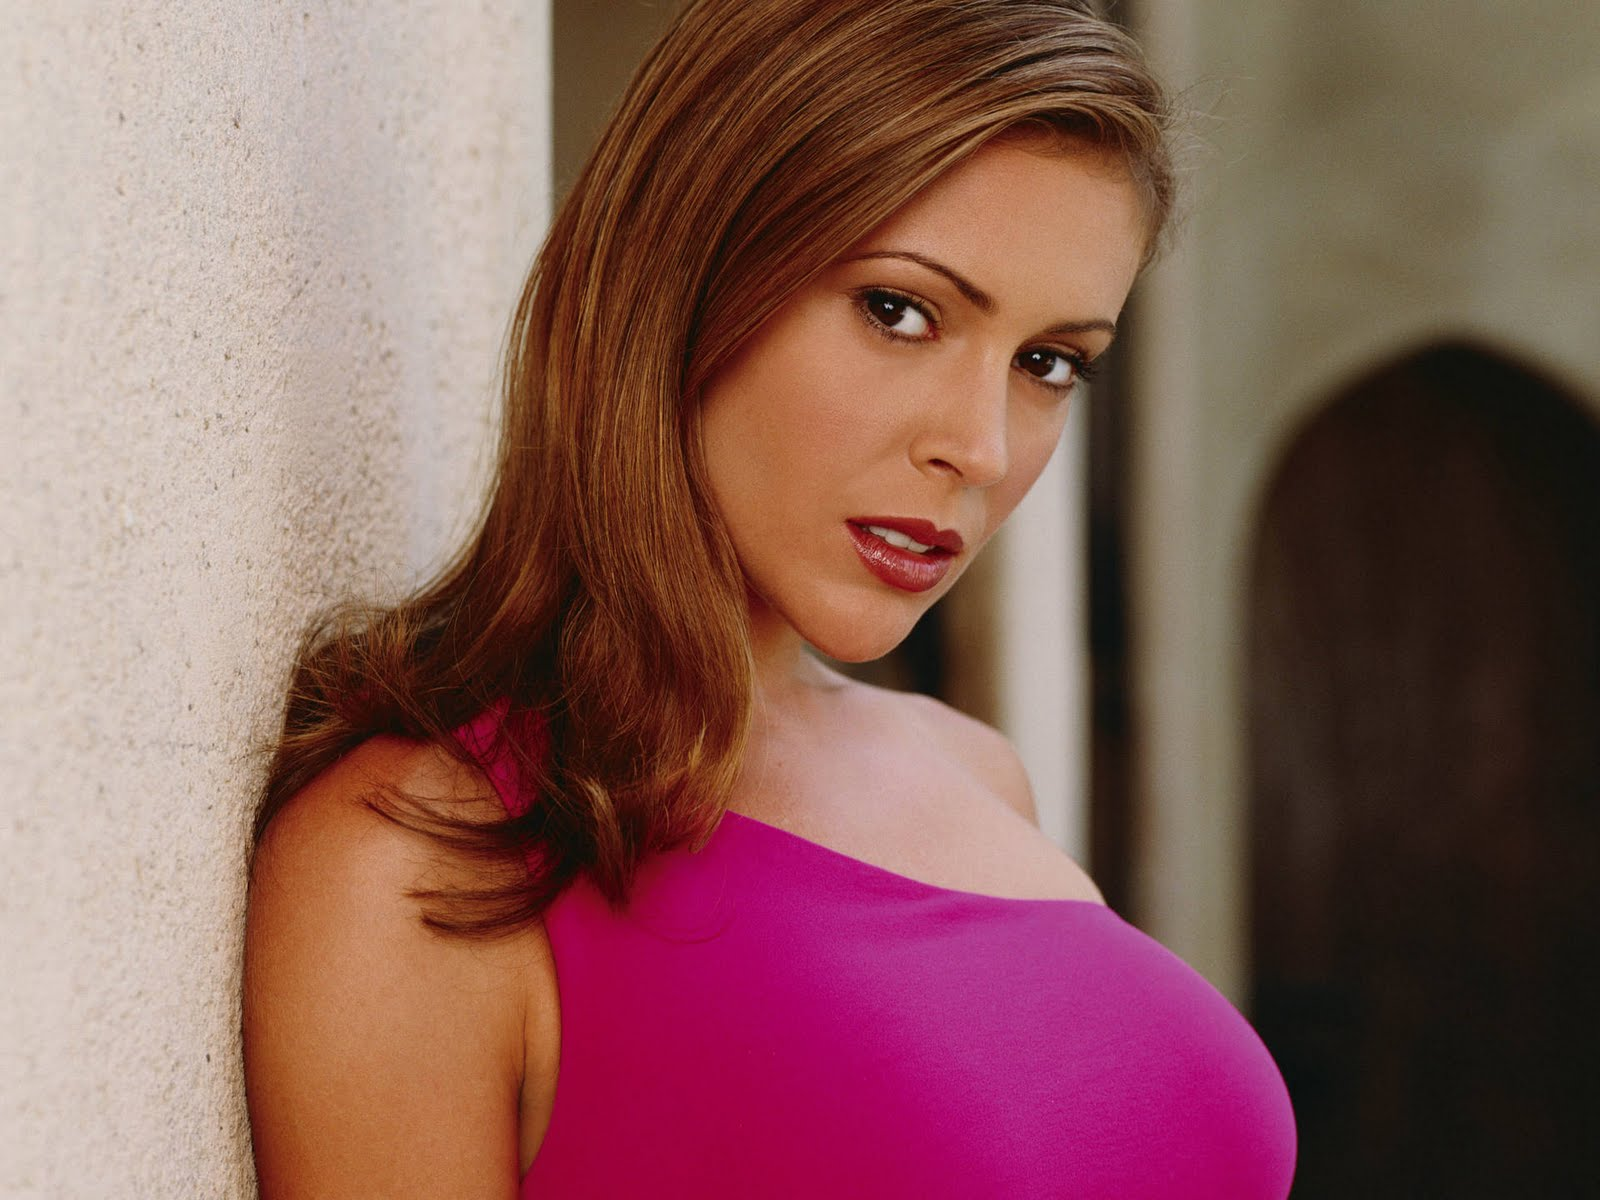 Alyssa milano porn pictures needs treatment